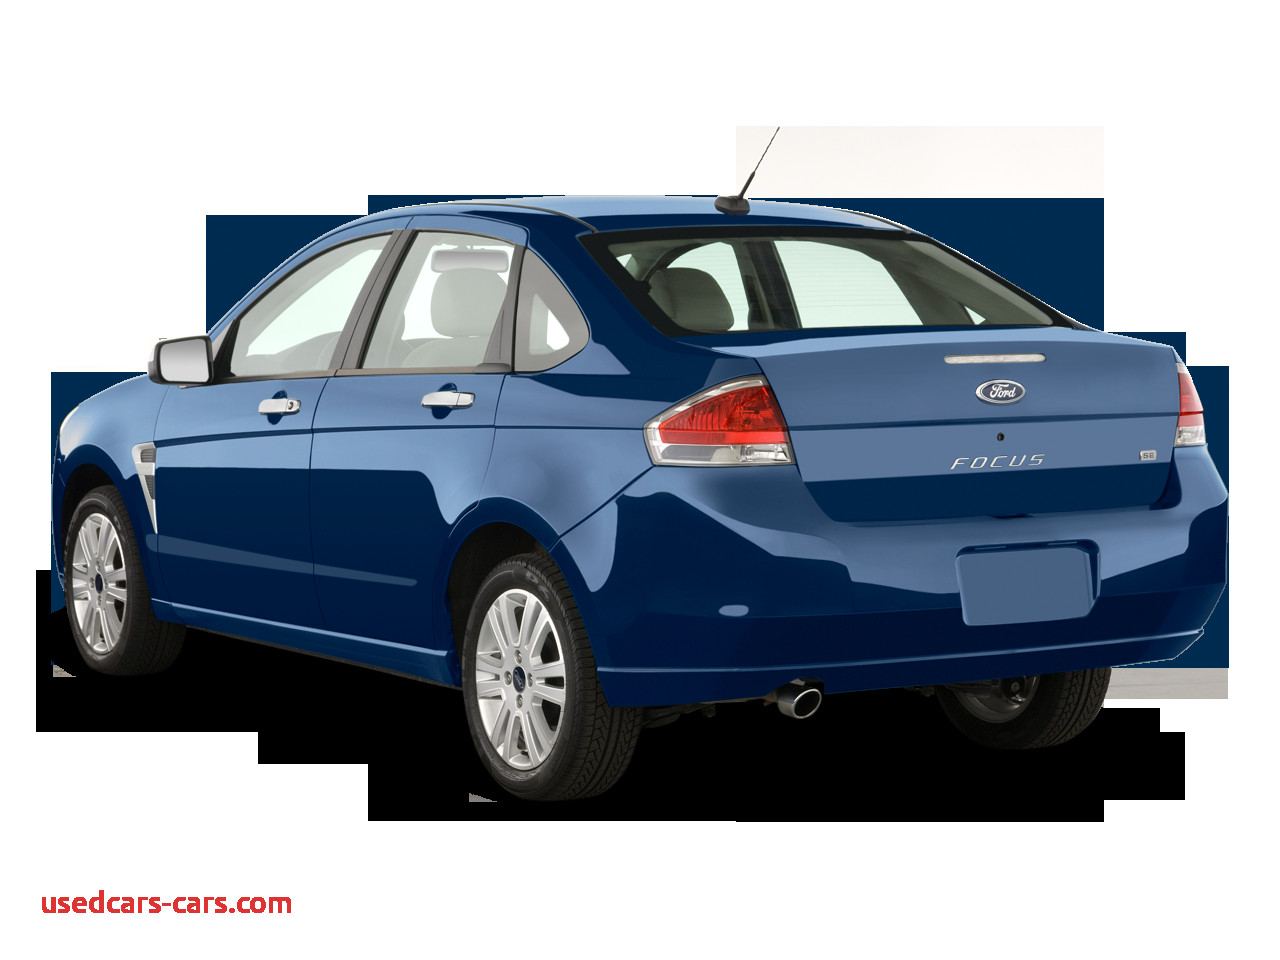 2009 ford Focus Se Coupe Awesome 2009 ford Focus Reviews and Rating Motor Trend